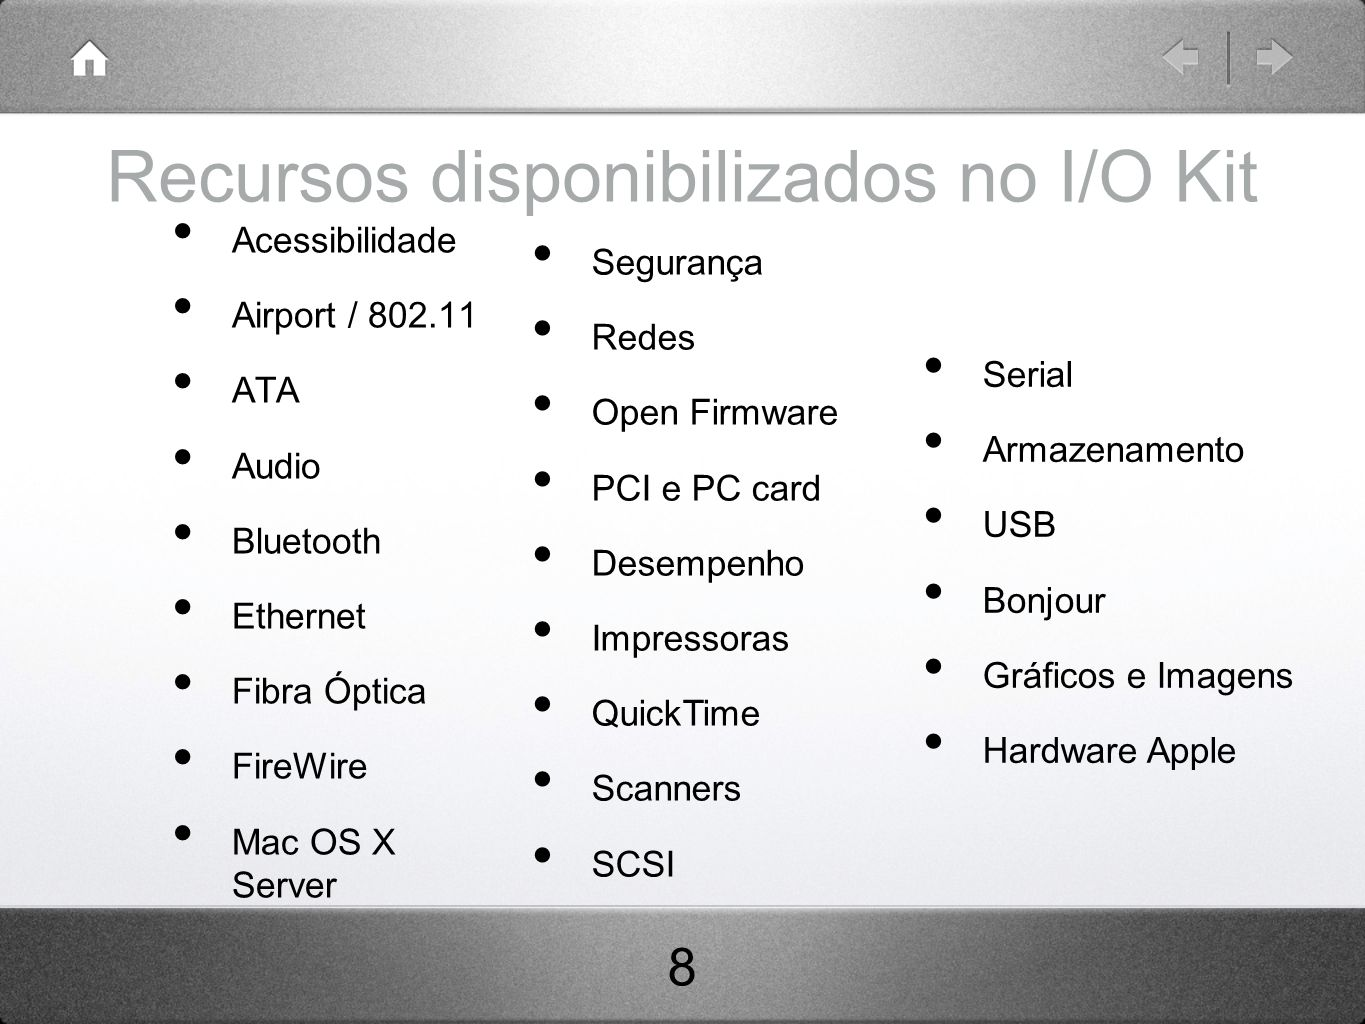 Recursos disponibilizados no I/O Kit